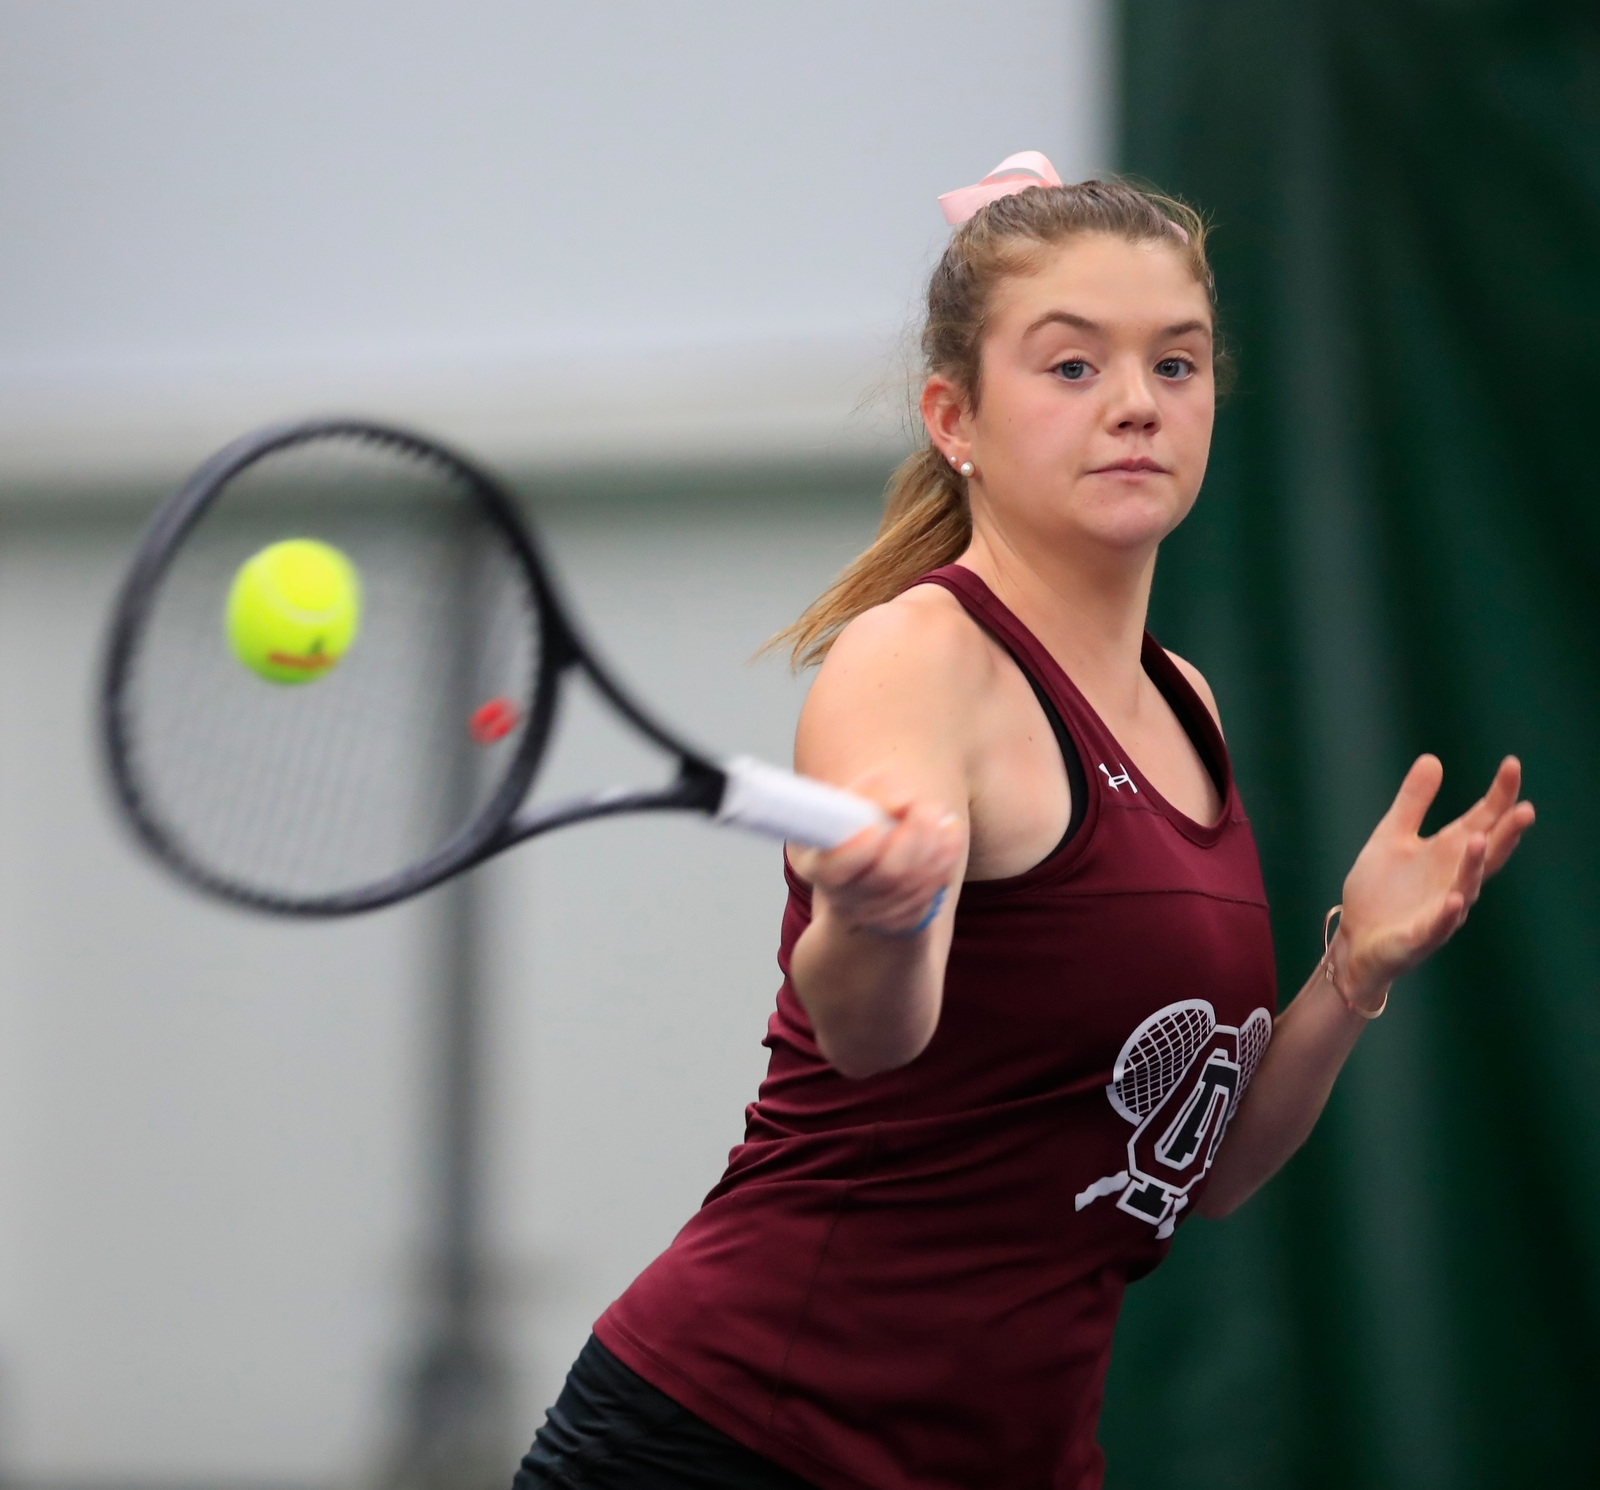 Madigan Humiston from Orchard Park high school during Section semi-final action at the Miller Tennis Center on Saturday, Oct. 21, 2017.